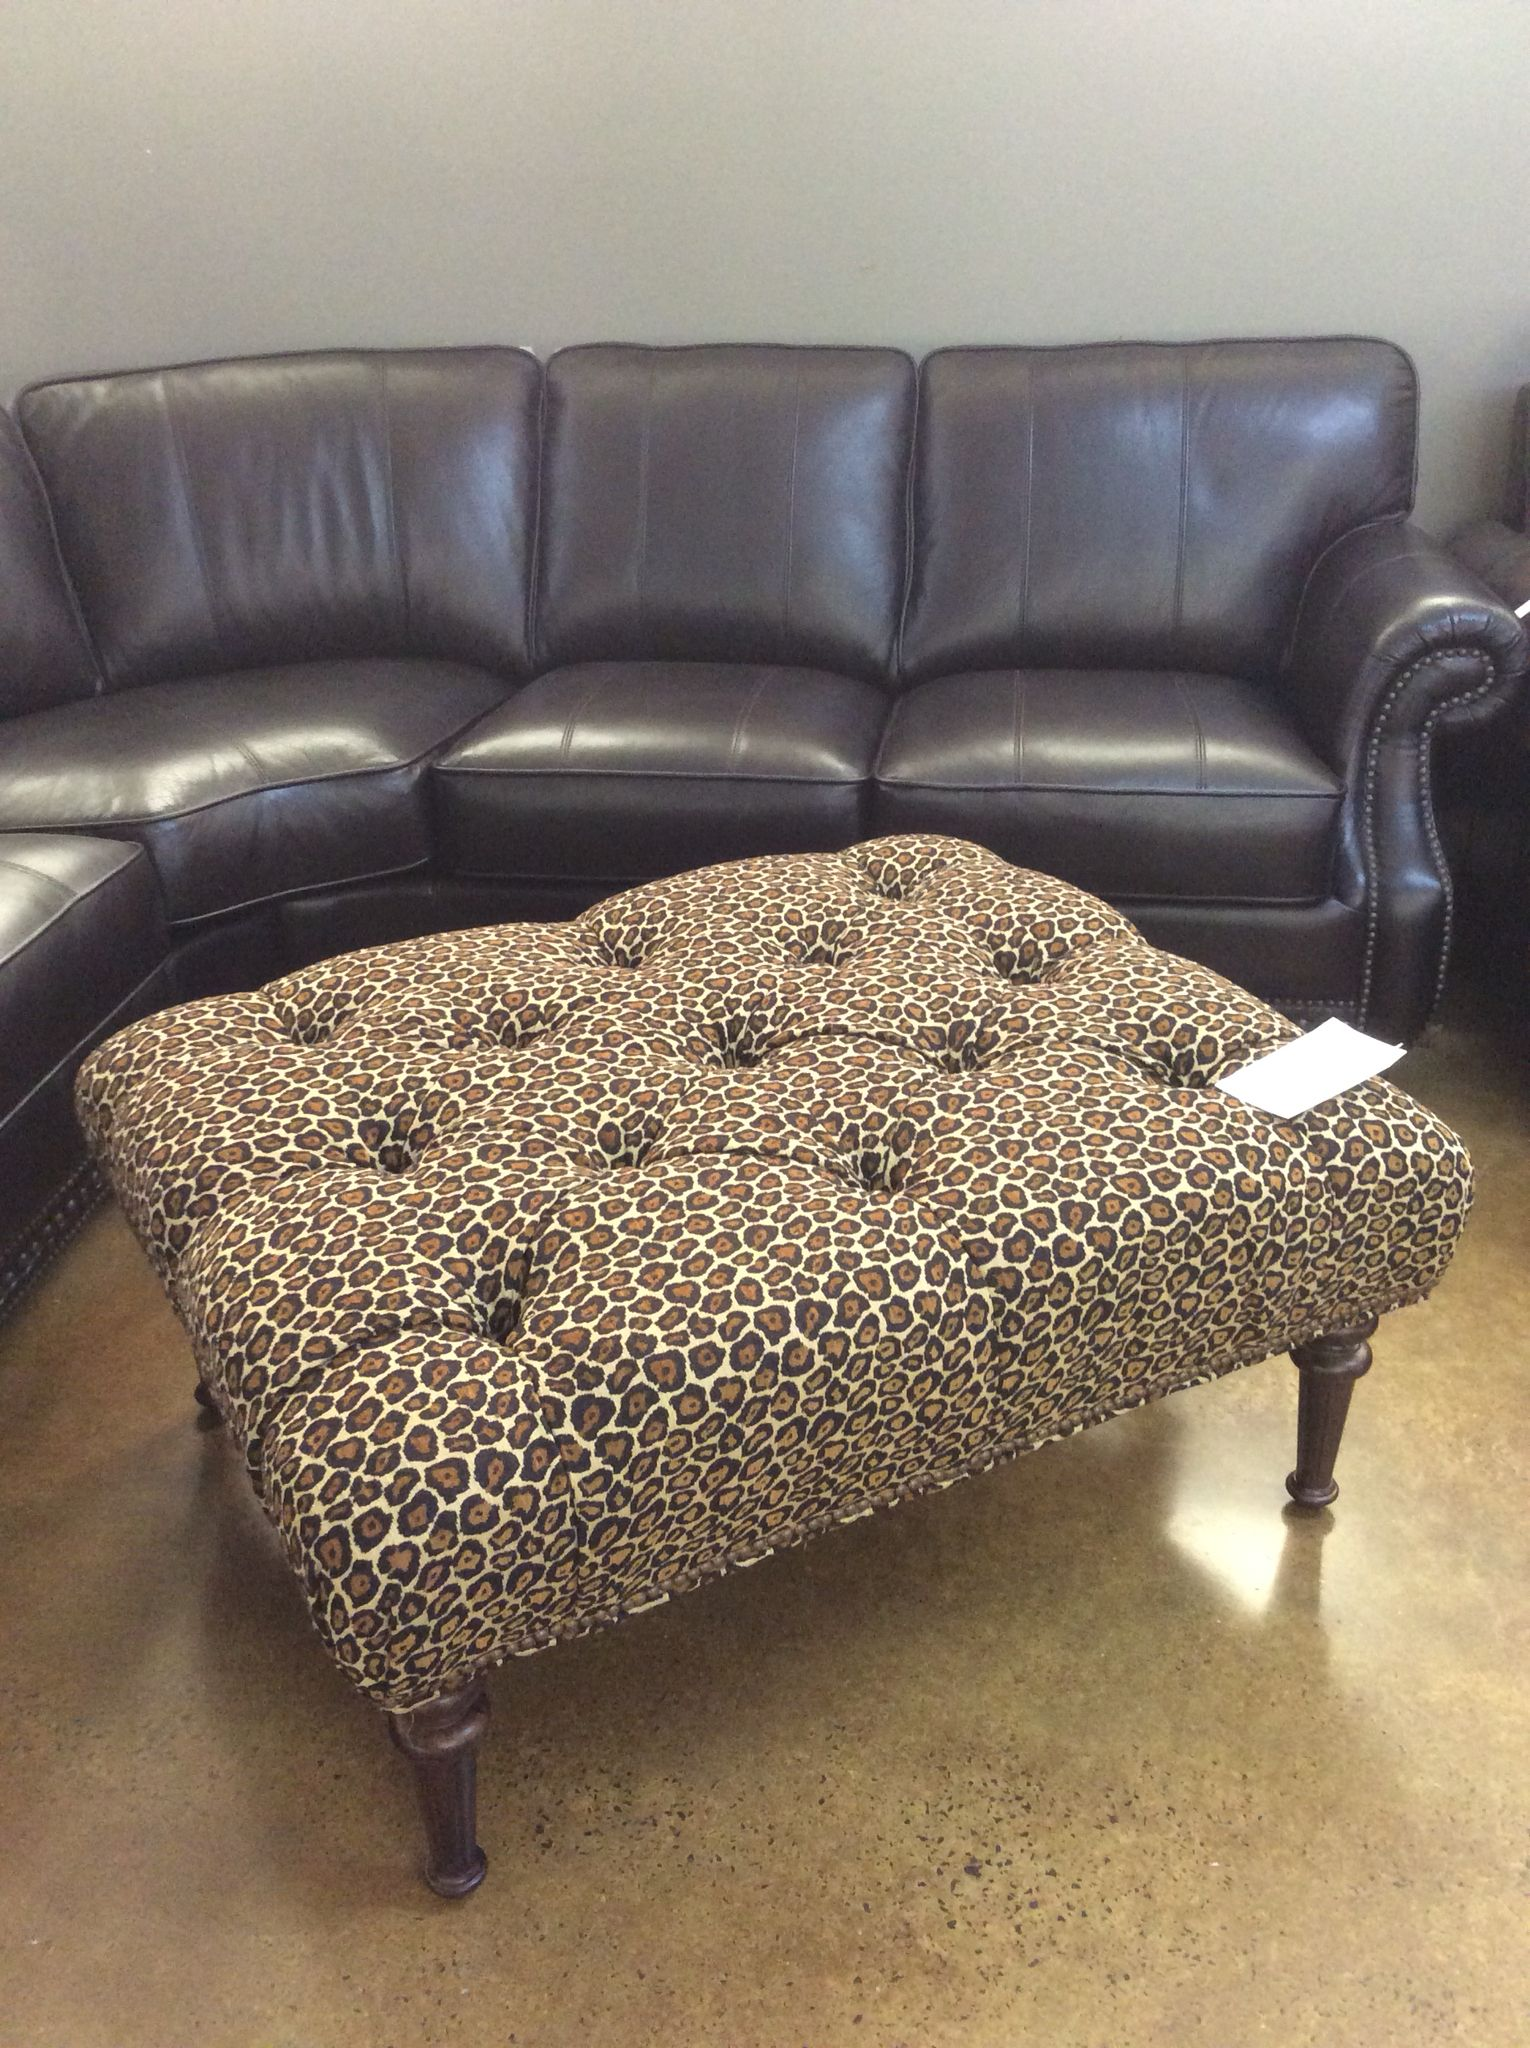 Need An Exotic Accent For Your Leather Furniture This Clayton Marcus Leopard Print Ottoman Is Answer